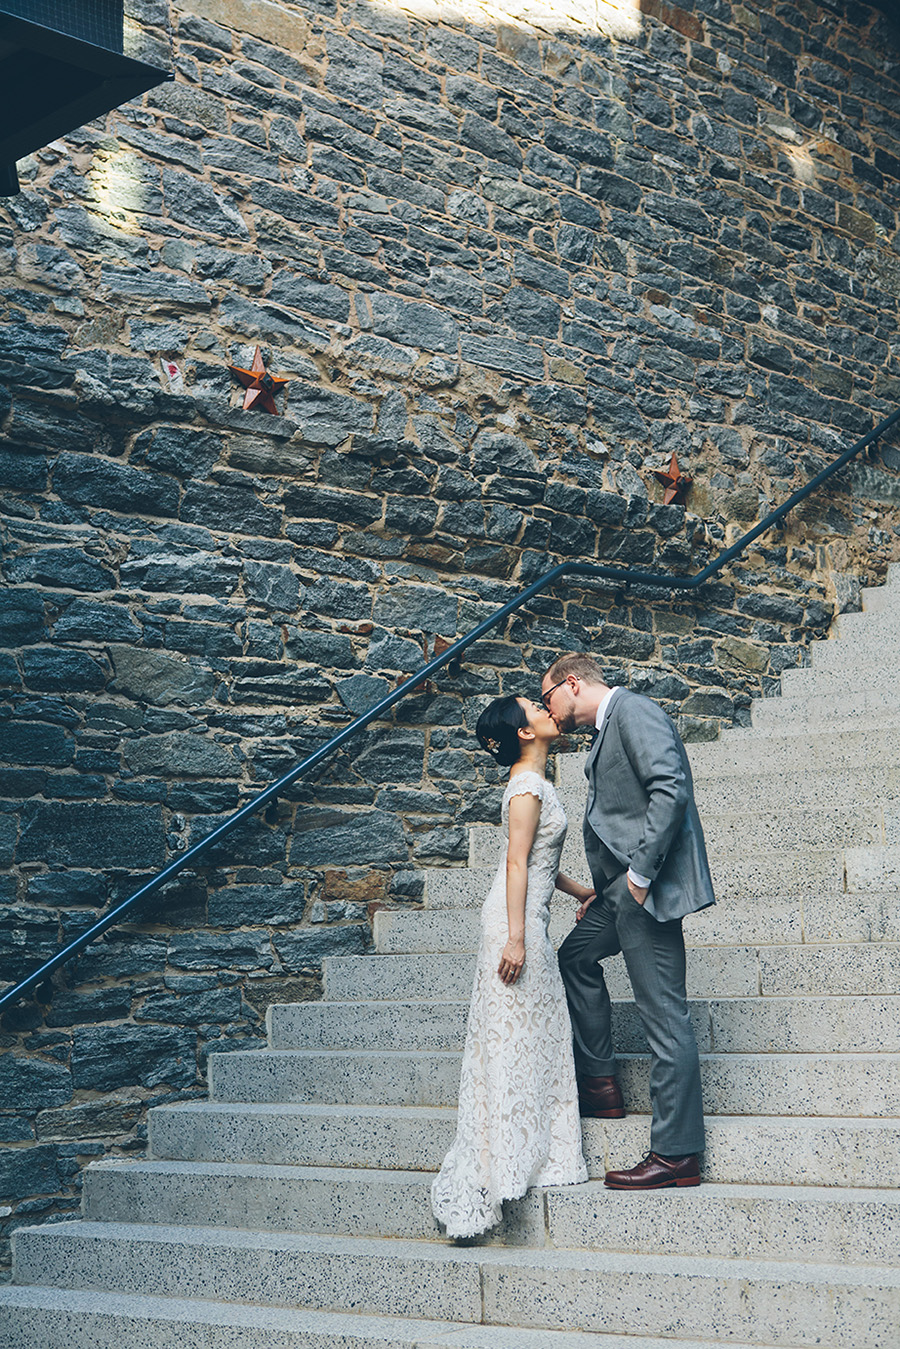 NEW-YORK-CITY-WEDDING-PHOTOGRAPHER-VINEGAR-HILL-HOUSE-INTIMATE-DUMBO-WEDDING-ELOPEMENT-MANHATTAN-BROOKLYN-WEDDING-PHOTOGRAPHY-0005.jpg